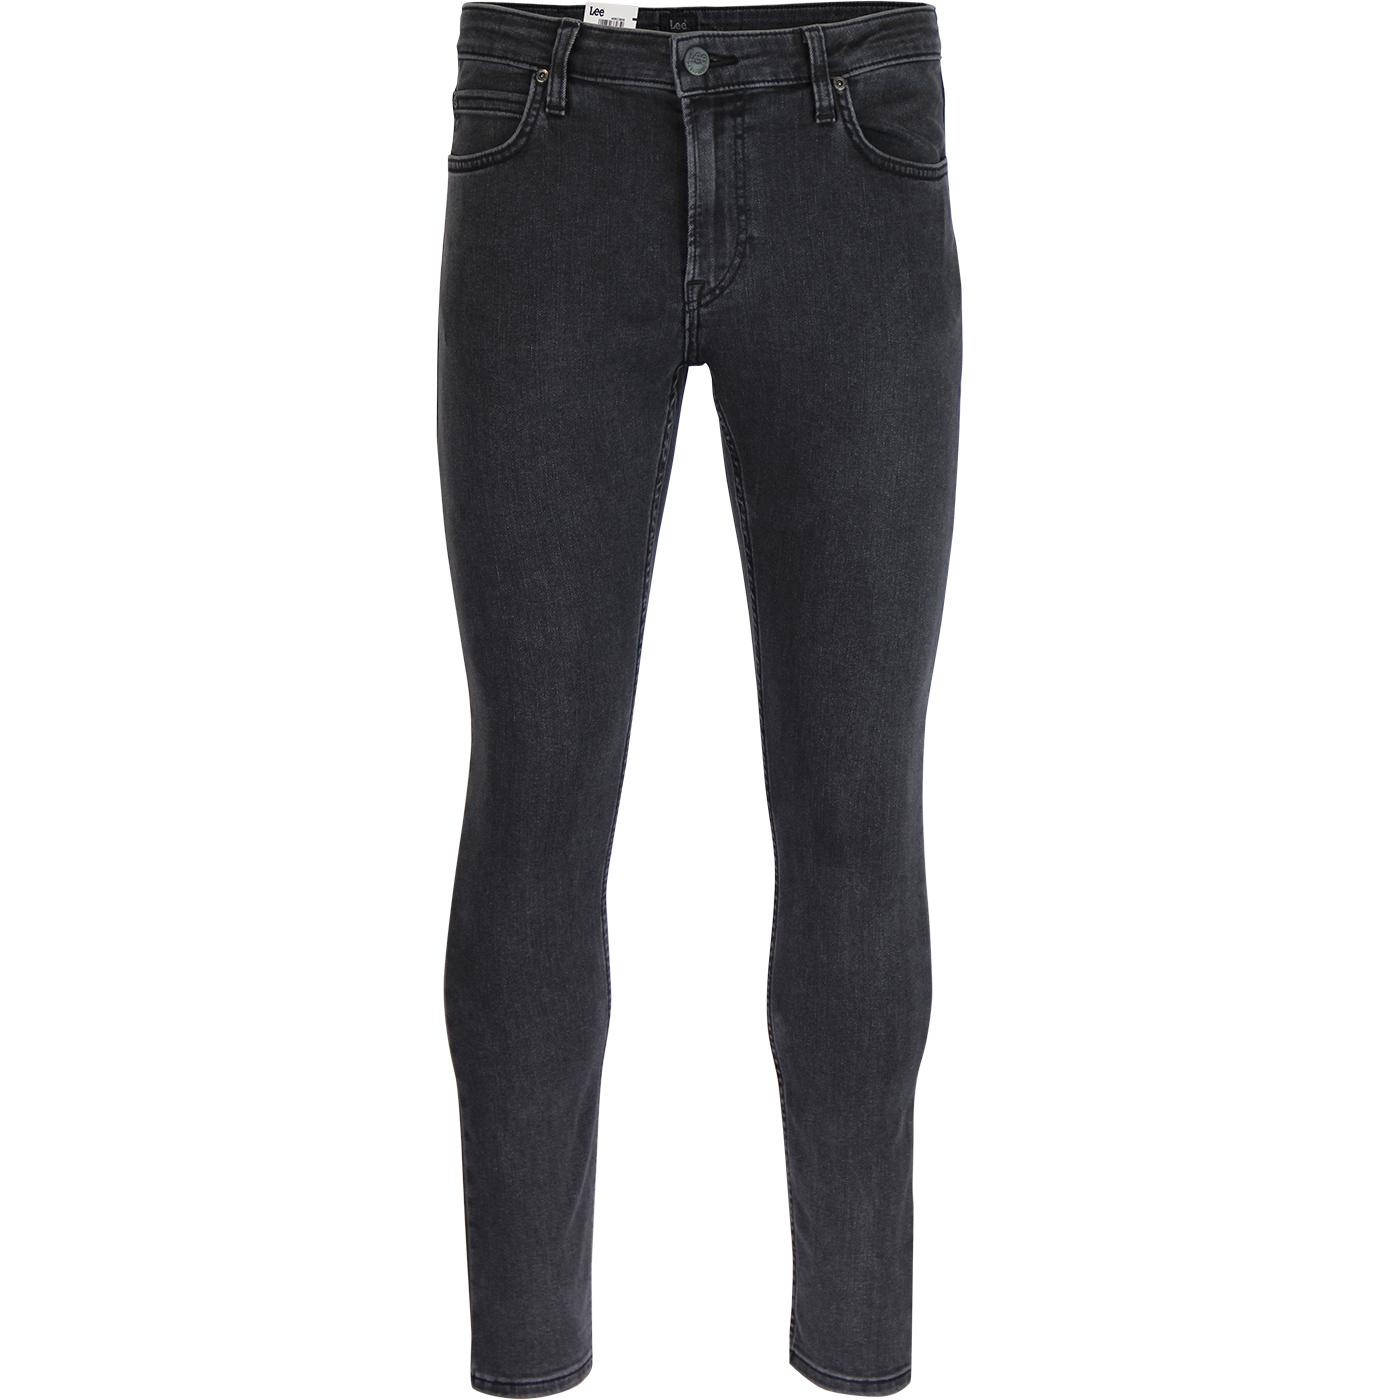 Malone LEE Retro Skinny Denim Jeans CONCRETE GREY